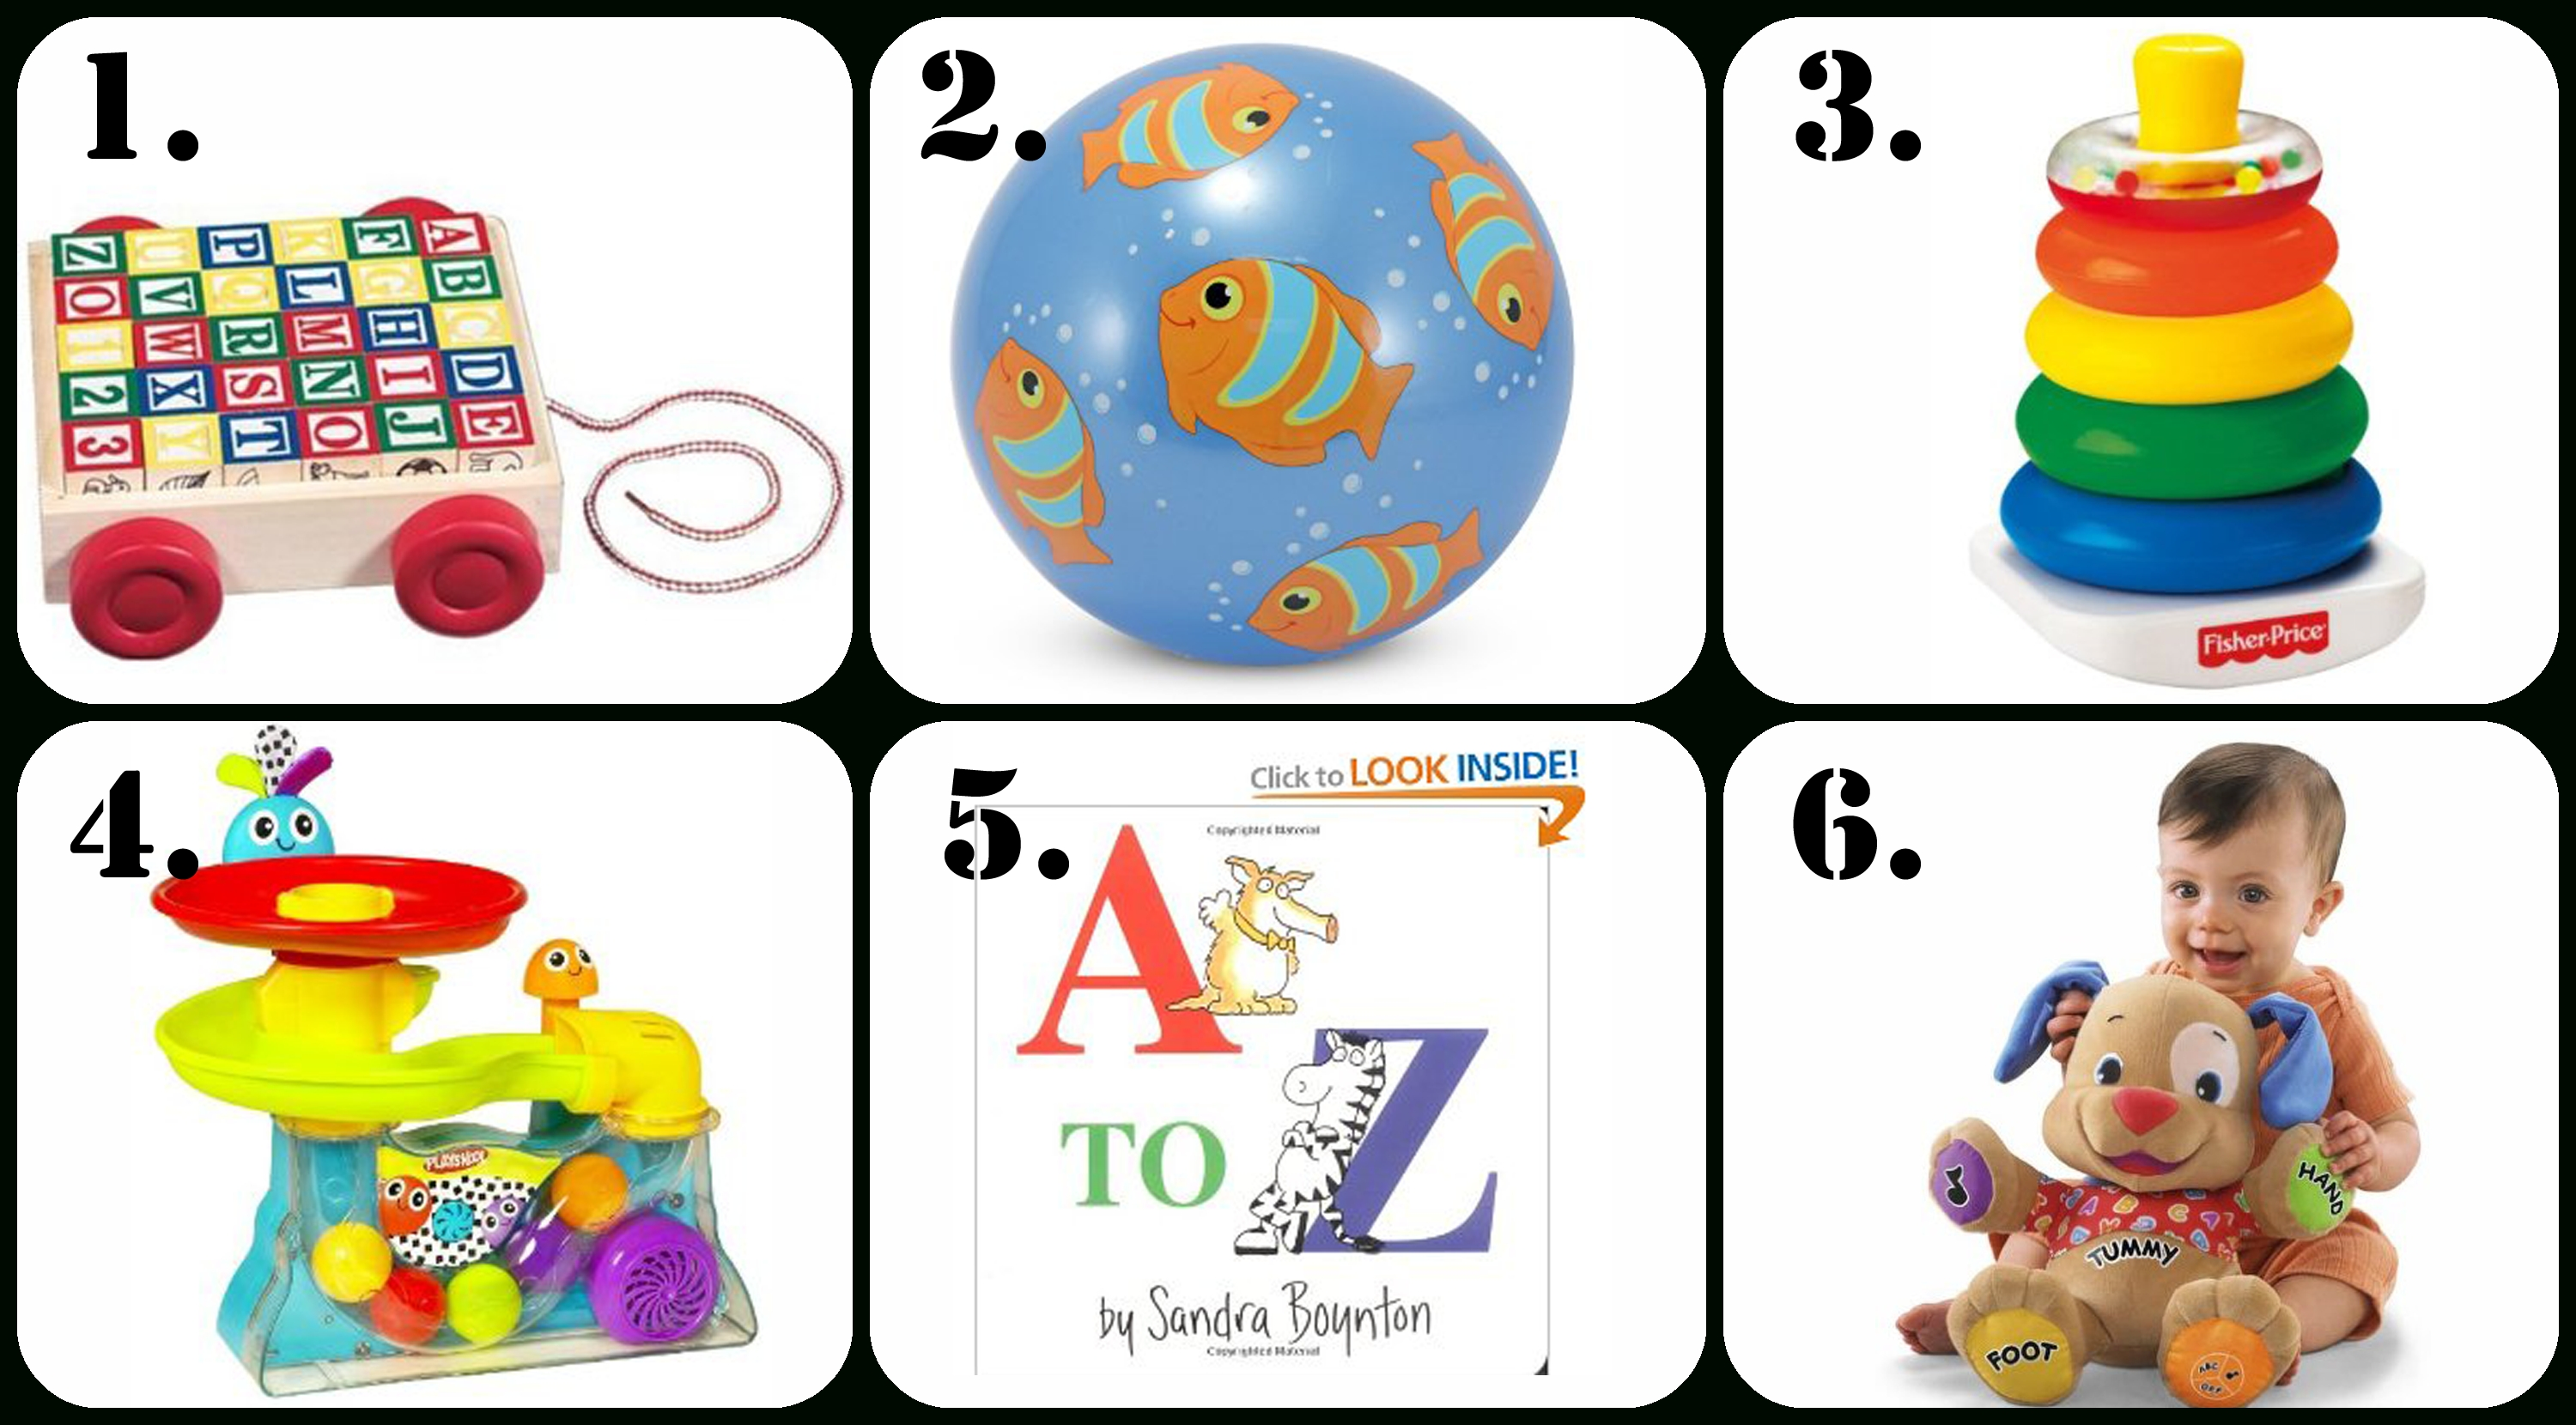 10 Lovely Gift Ideas For 1 Year Old Baby Girl the ultimate gift list for a 1 year old girl e280a2 the pinning mama 14 2020